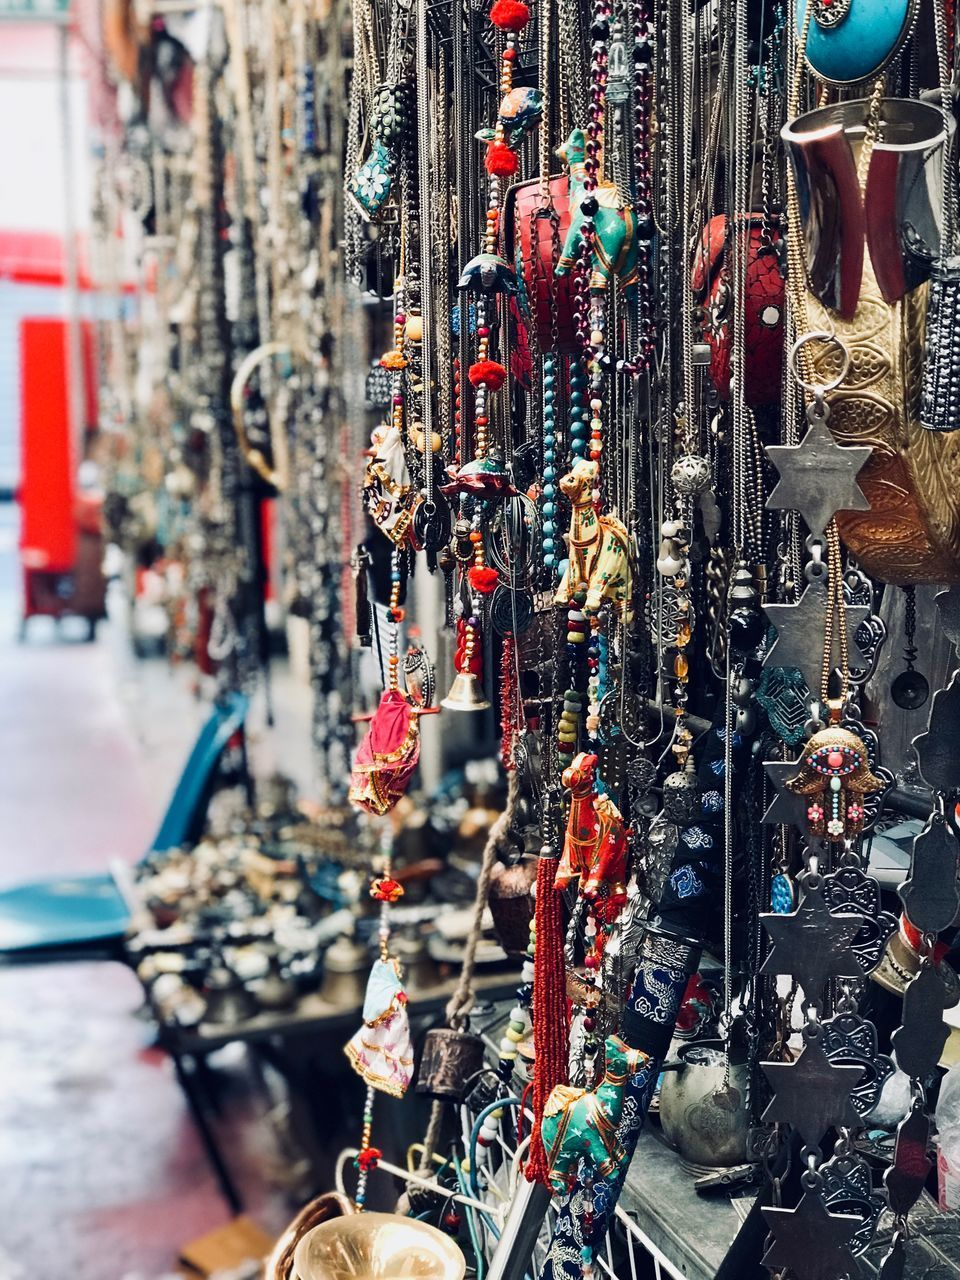 for sale, choice, large group of objects, abundance, retail, market, variation, collection, store, no people, market stall, day, hanging, close-up, shopping, land vehicle, retail display, sale, selective focus, outdoors, consumerism, street market